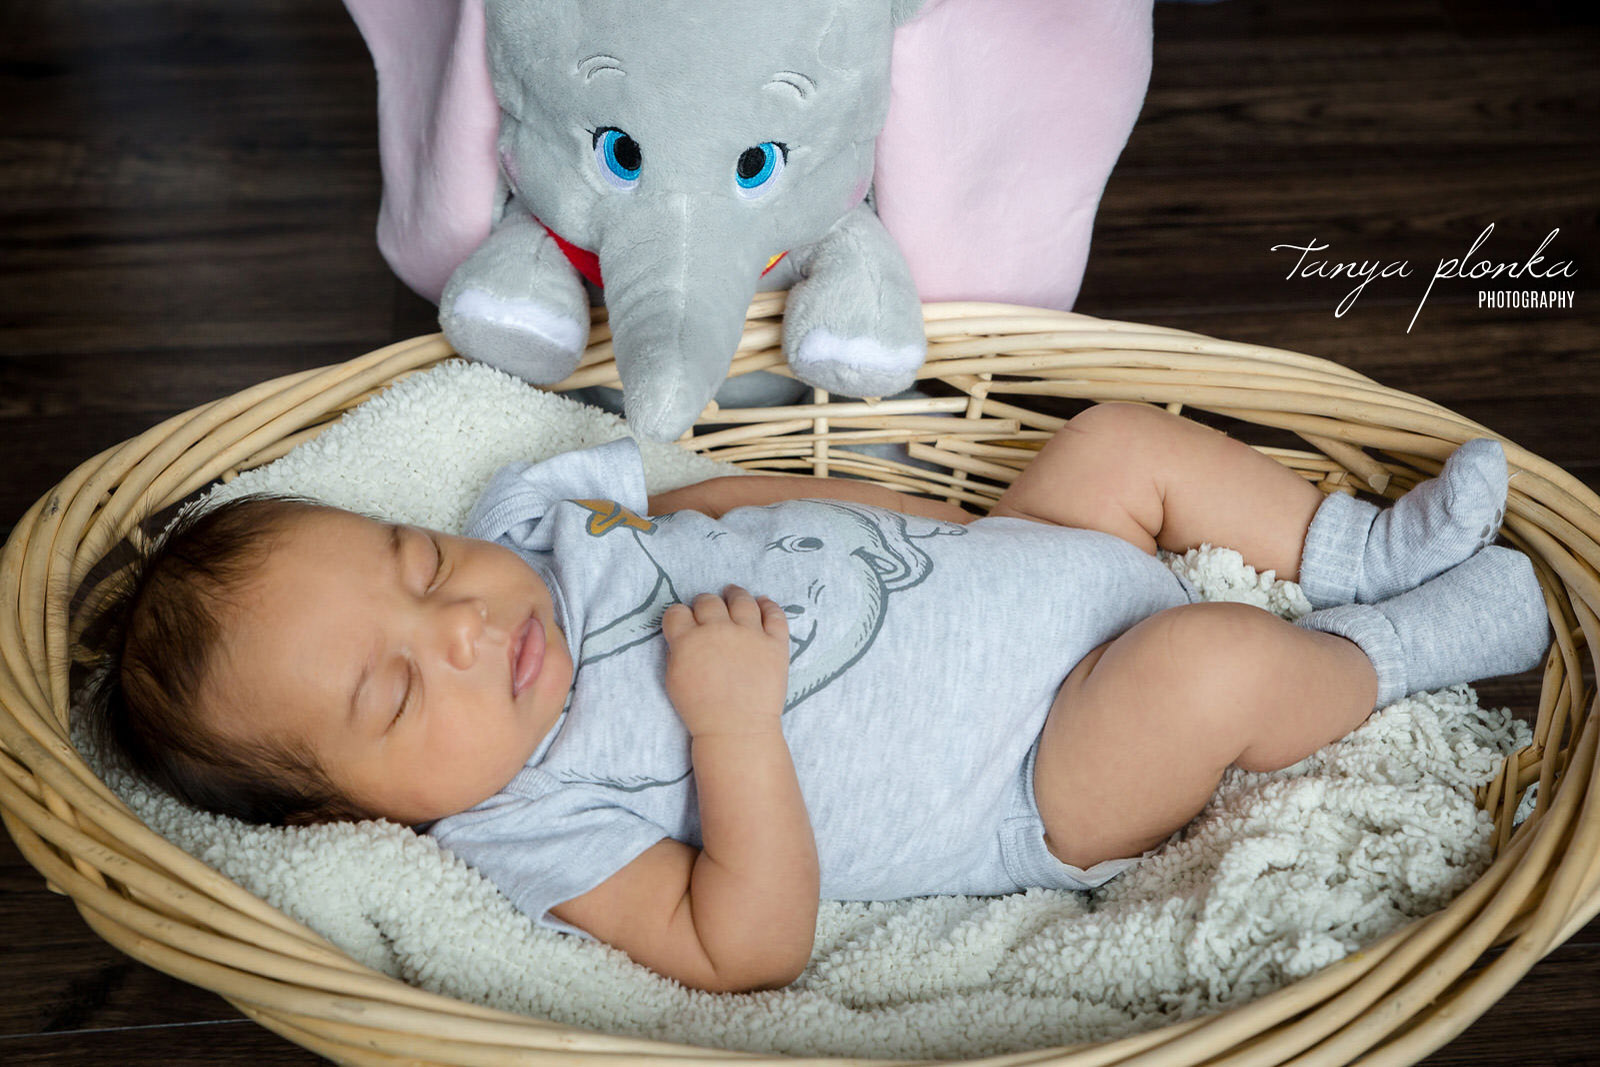 baby sleeps in wicker basket while stuffed Dumbo toy leans on far edge of basket